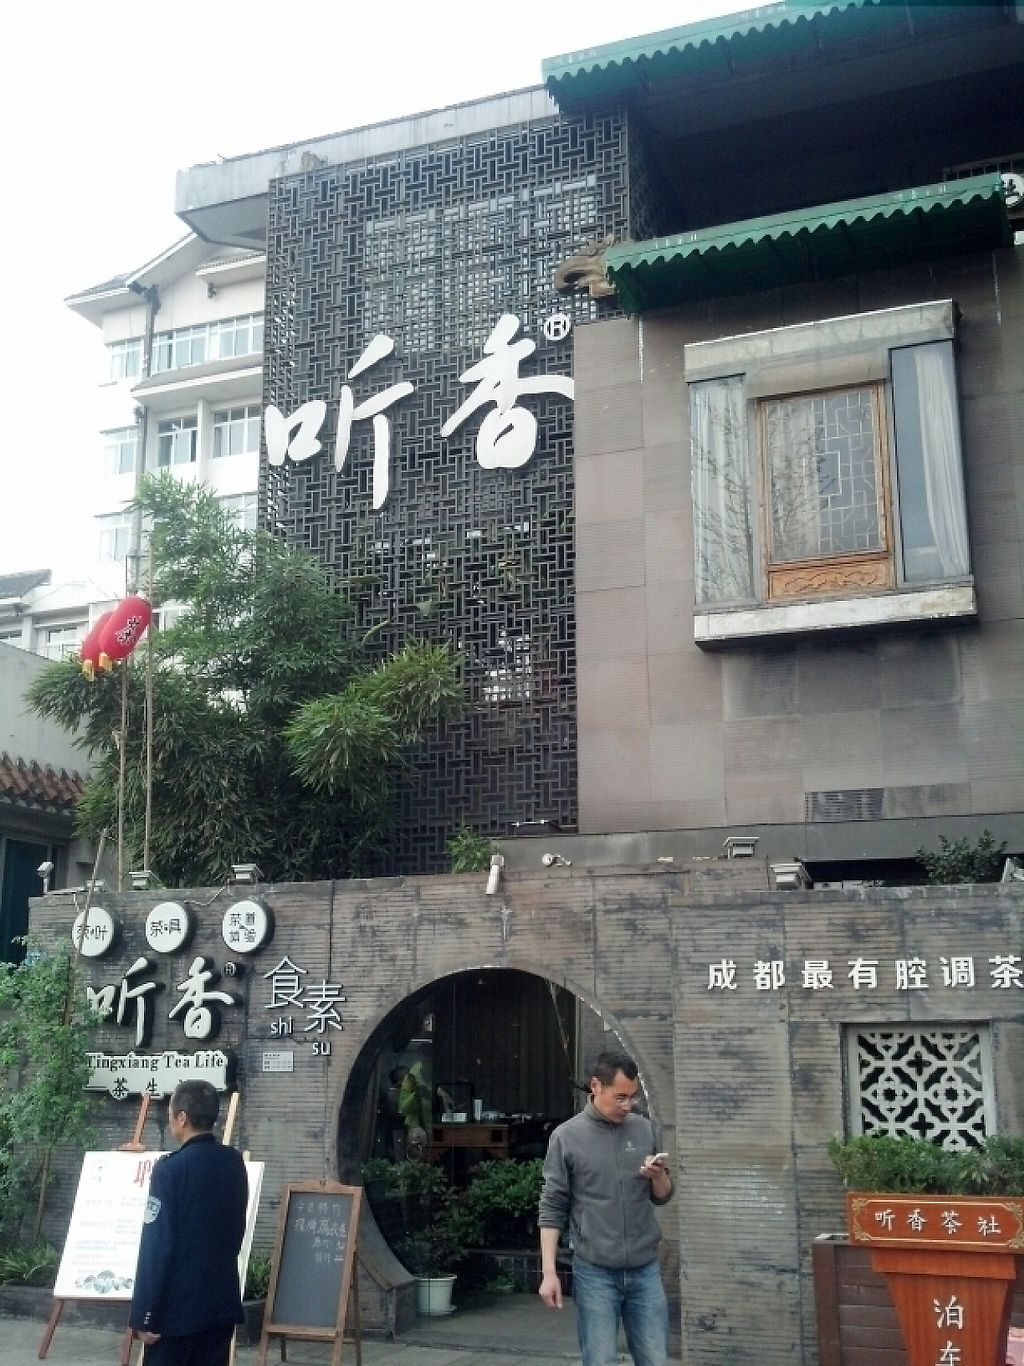 """Photo of Ting Xiang Tea Life - temporarily closed  by <a href=""""/members/profile/dicer"""">dicer</a> <br/>Entrance <br/> April 8, 2017  - <a href='/contact/abuse/image/74064/245703'>Report</a>"""